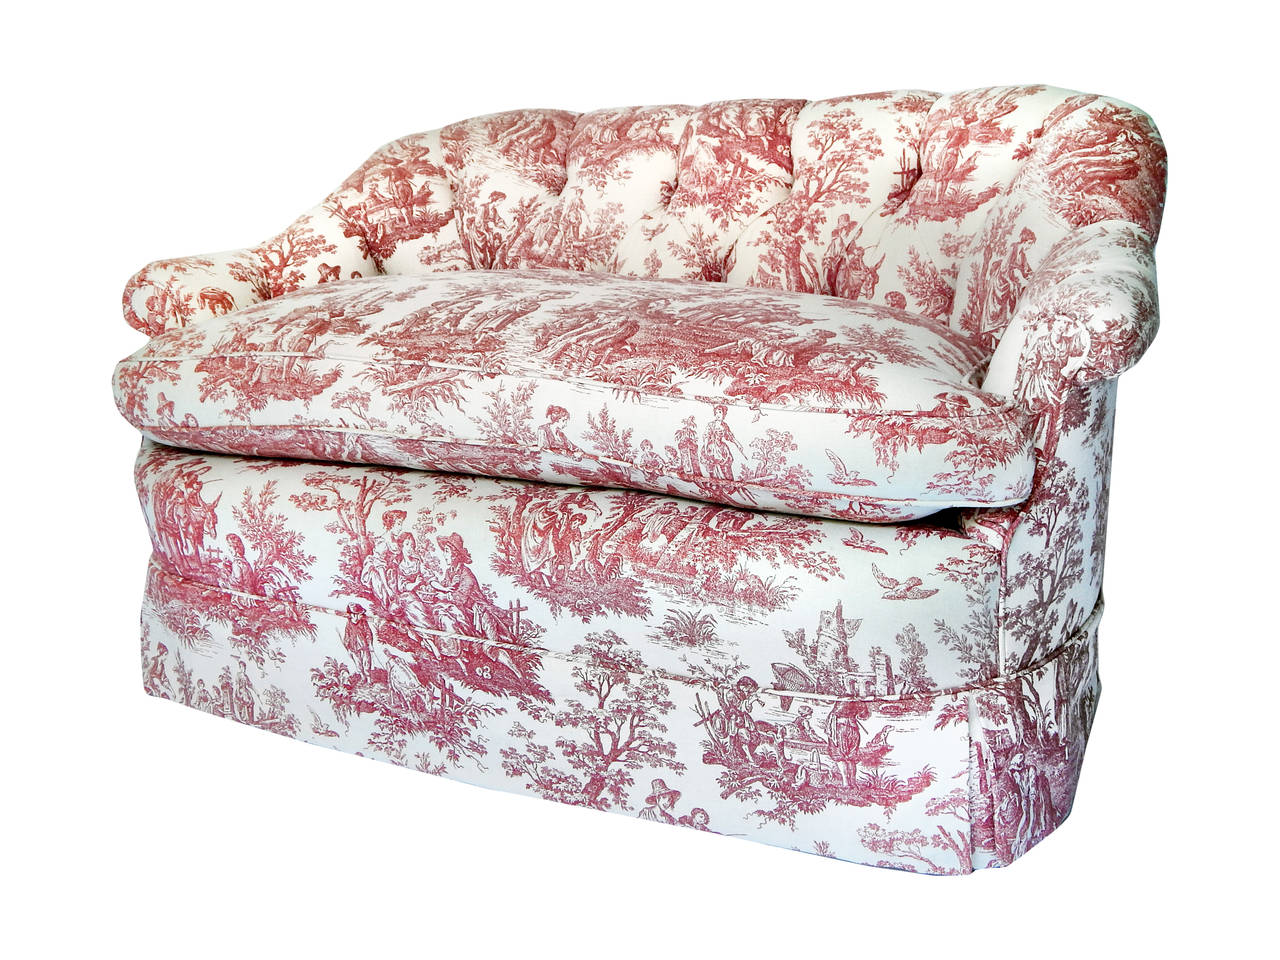 pair of tufted toile loveseats at 1stdibs 87990